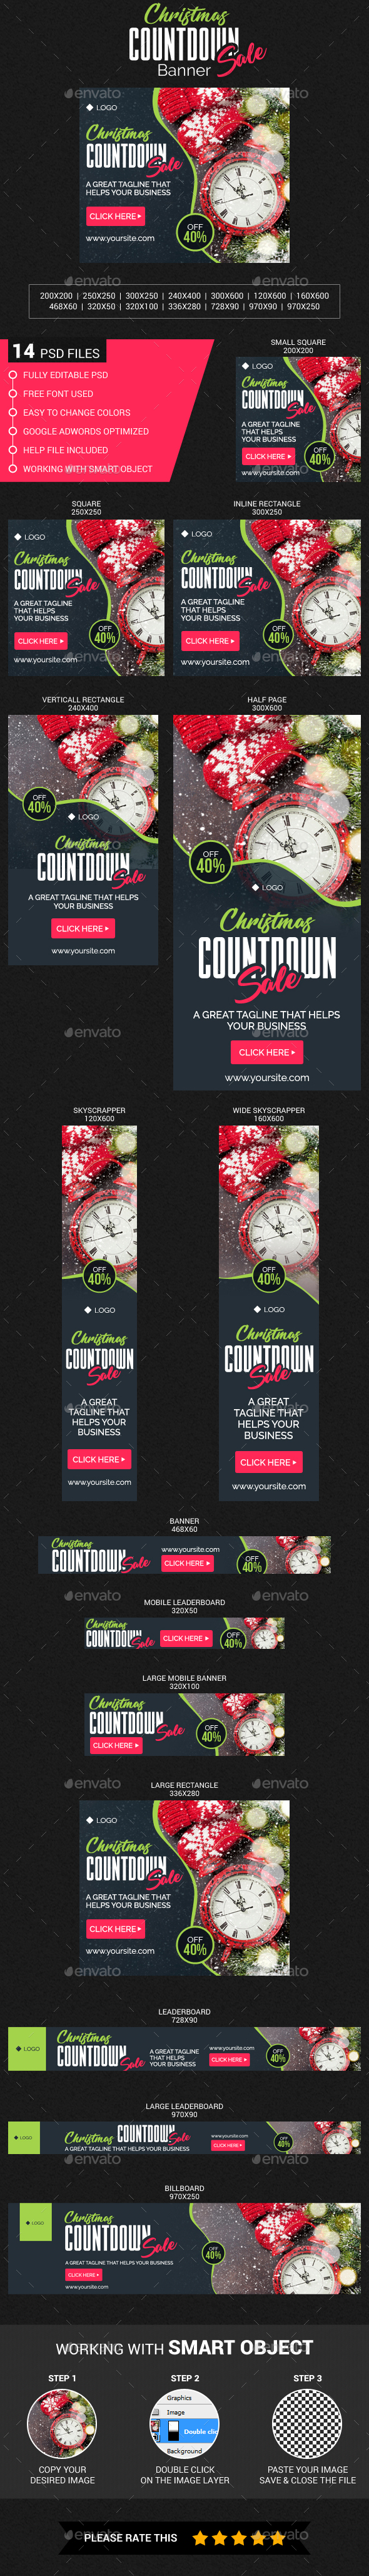 Christmas Countdown Sale Banner - Banners & Ads Web Elements